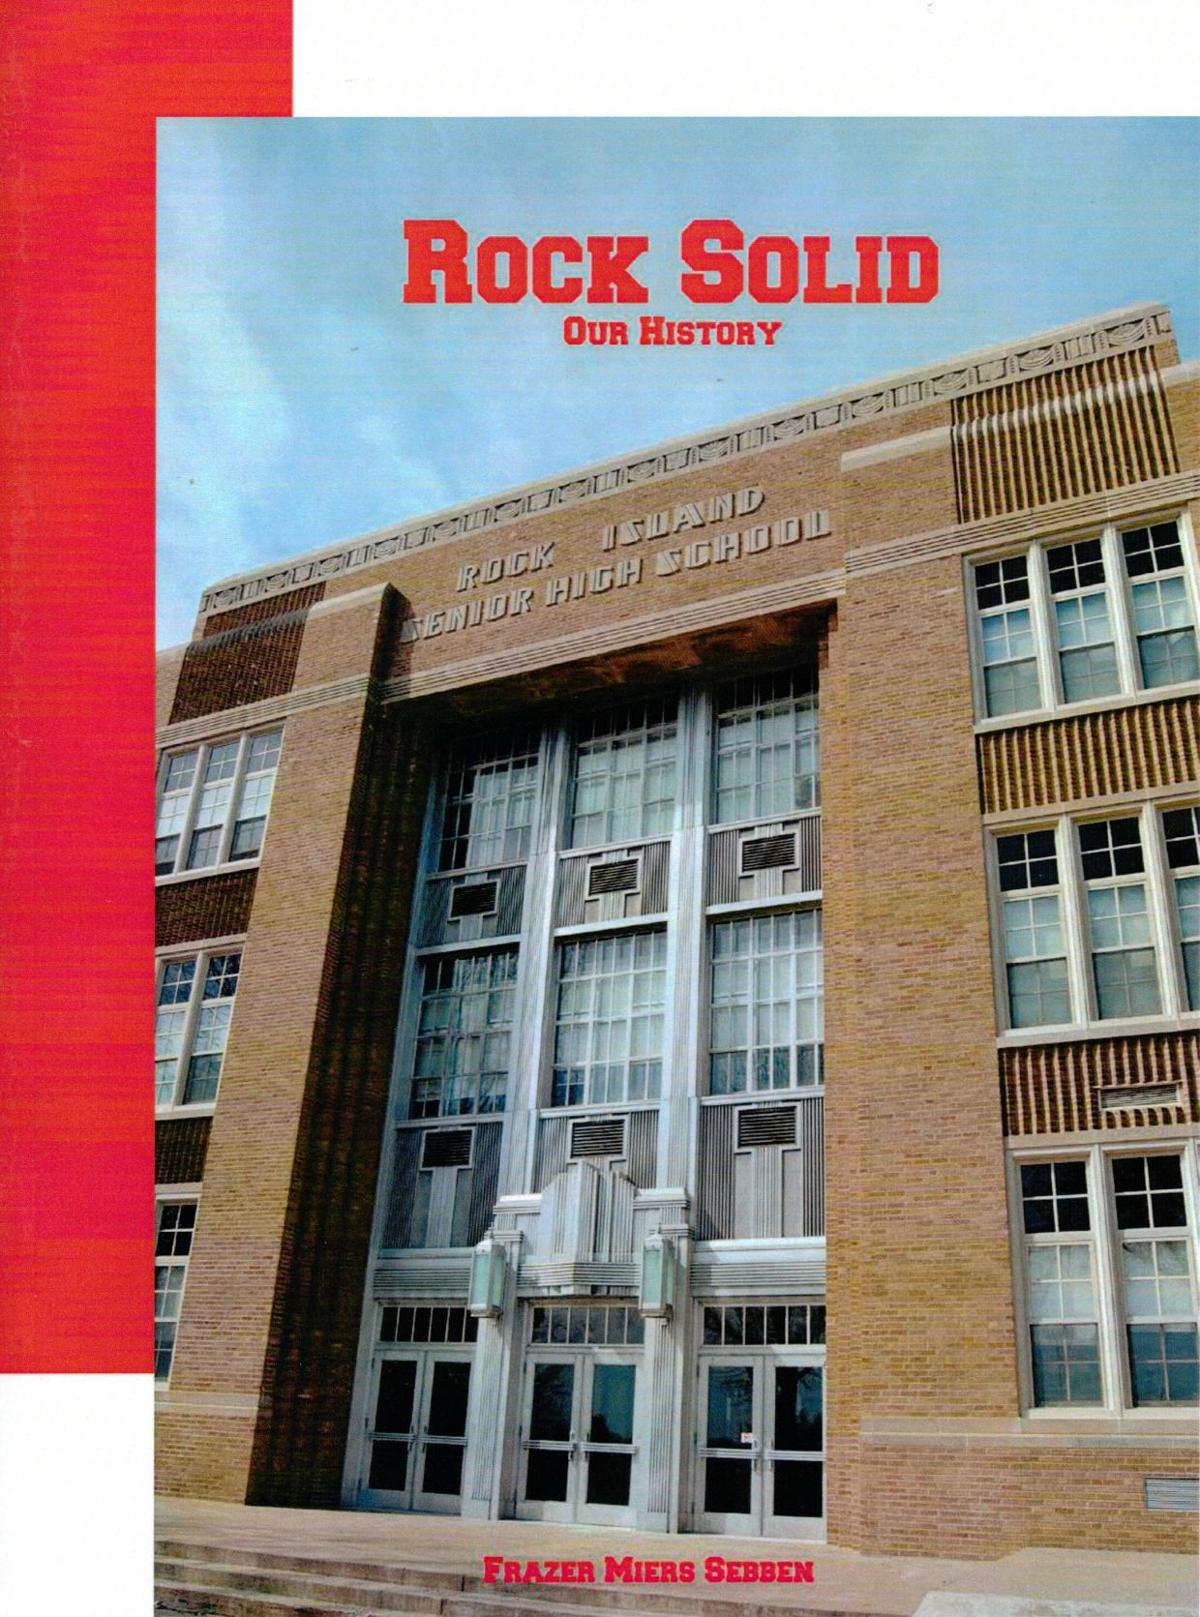 'Rock Solid: Our History' book jacket